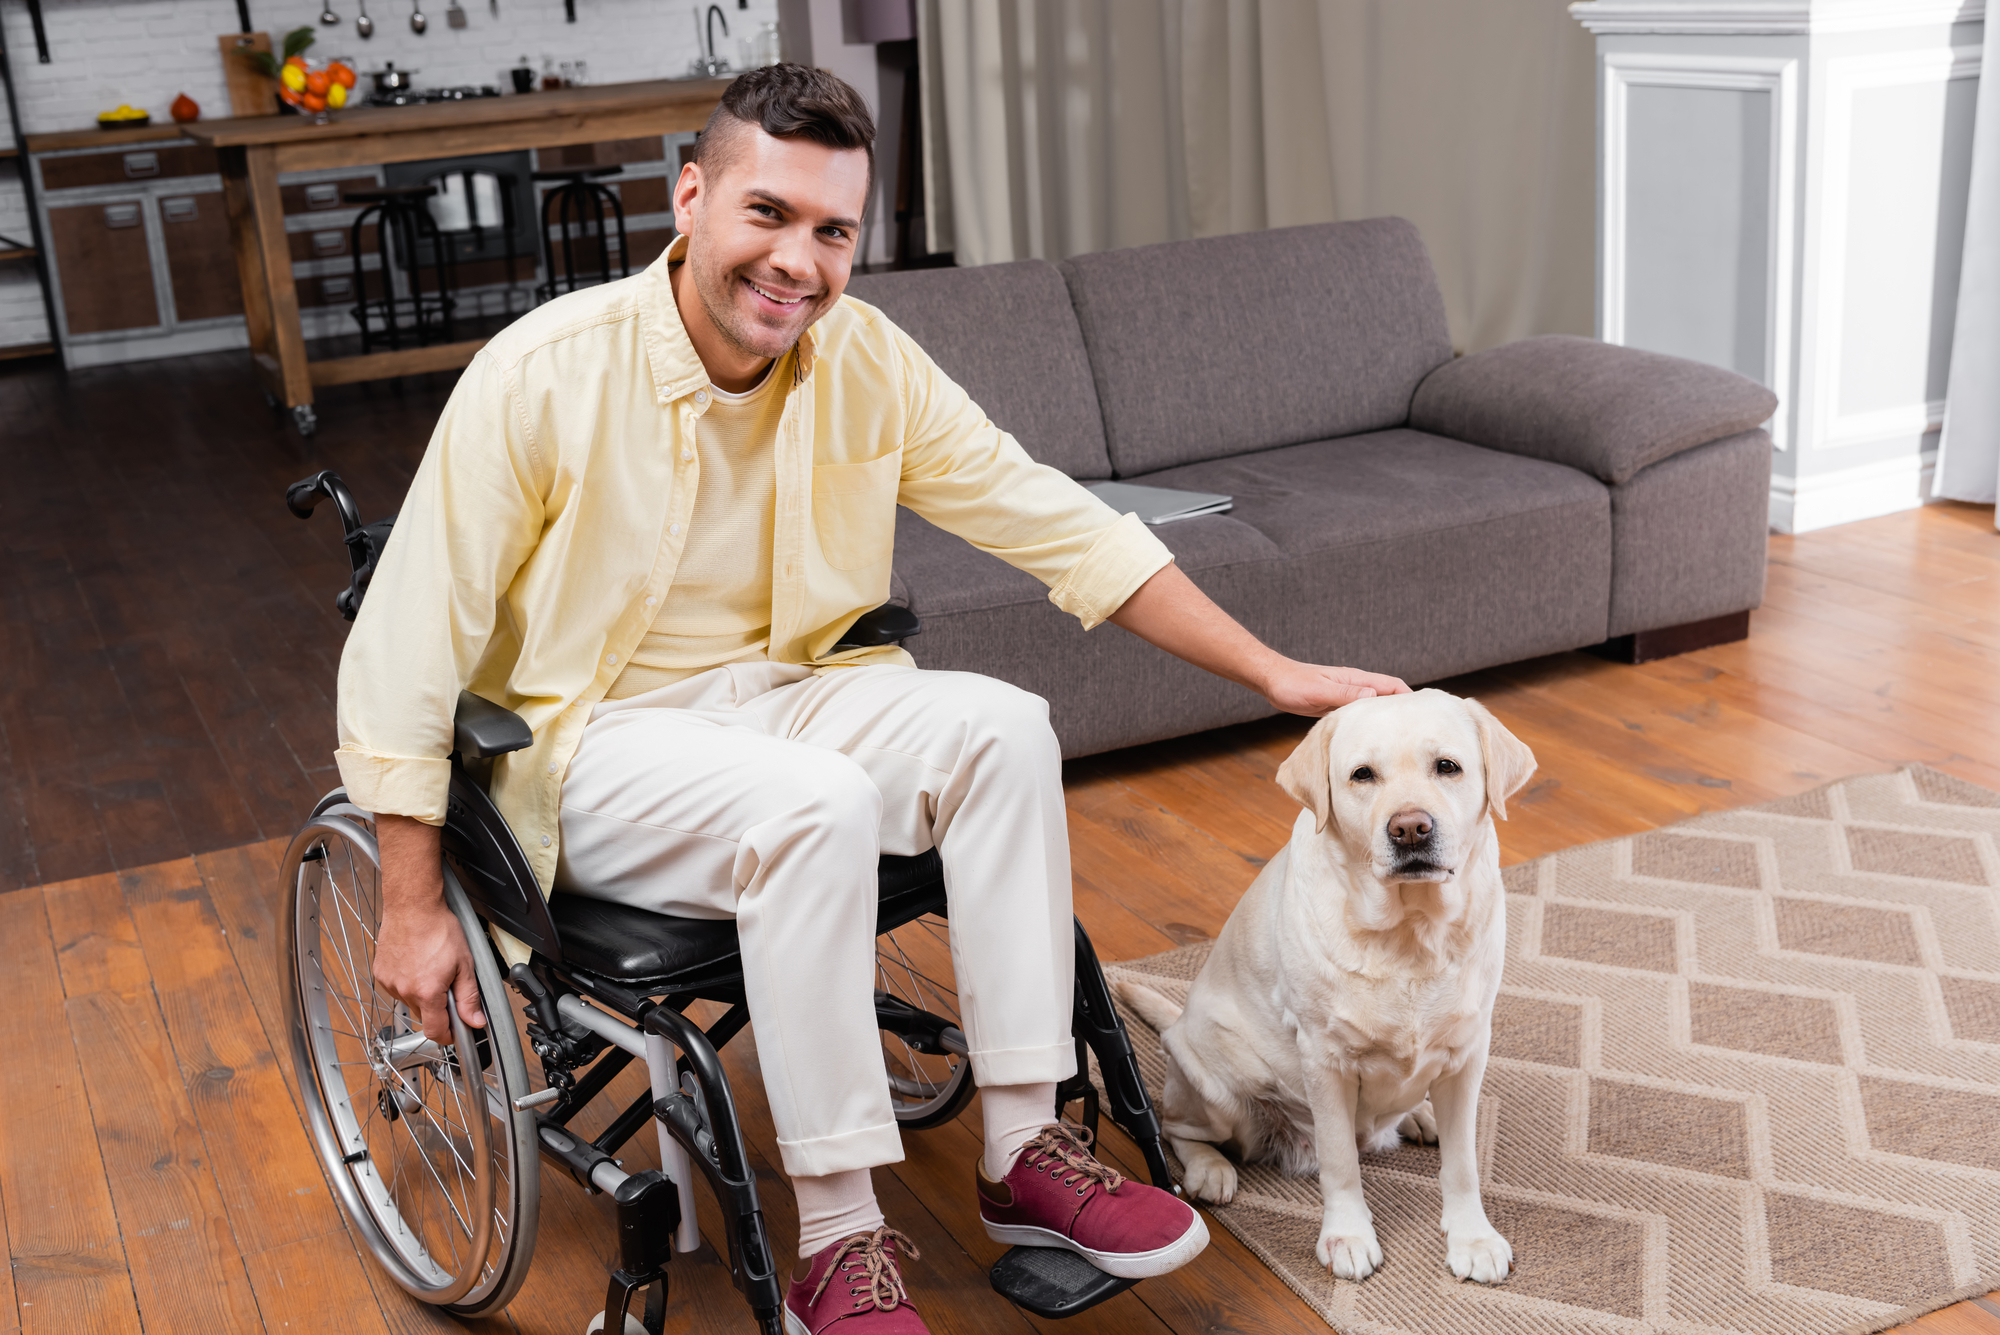 Handicapped man petting labrador dog while sitting in wheelchair at home